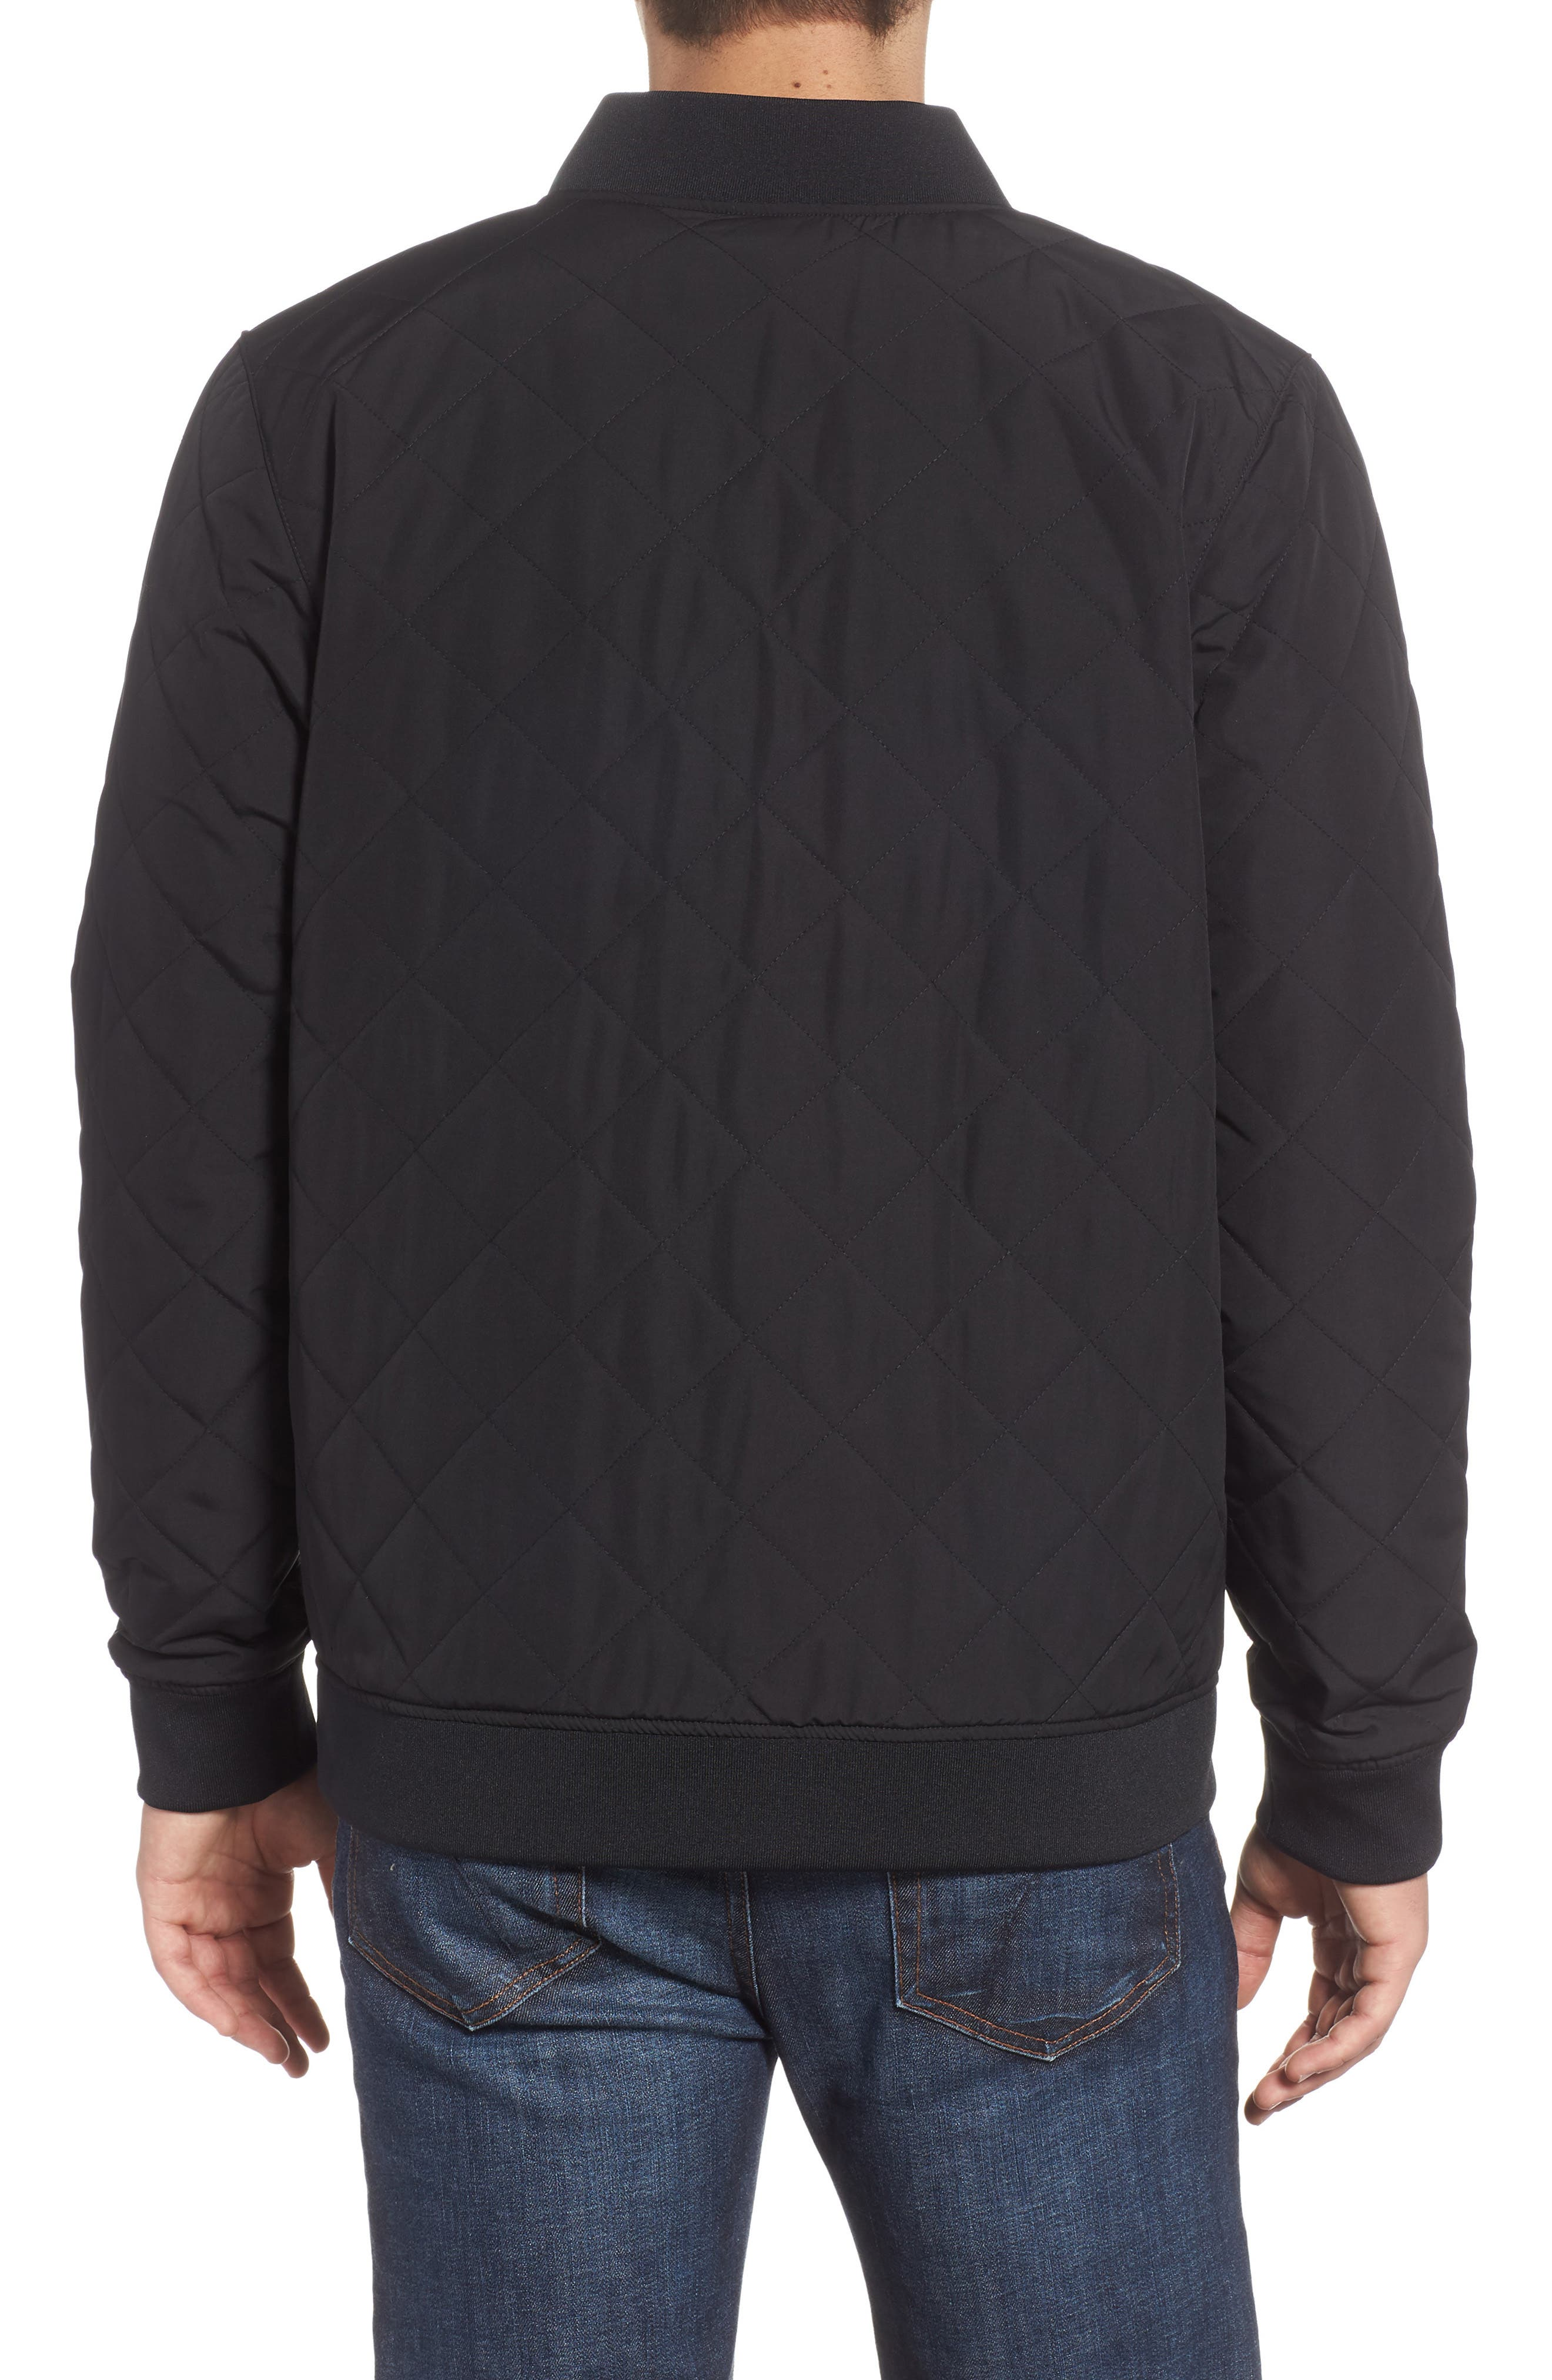 THE NORTH FACE, Jester Reversible Bomber Jacket, Alternate thumbnail 4, color, 001